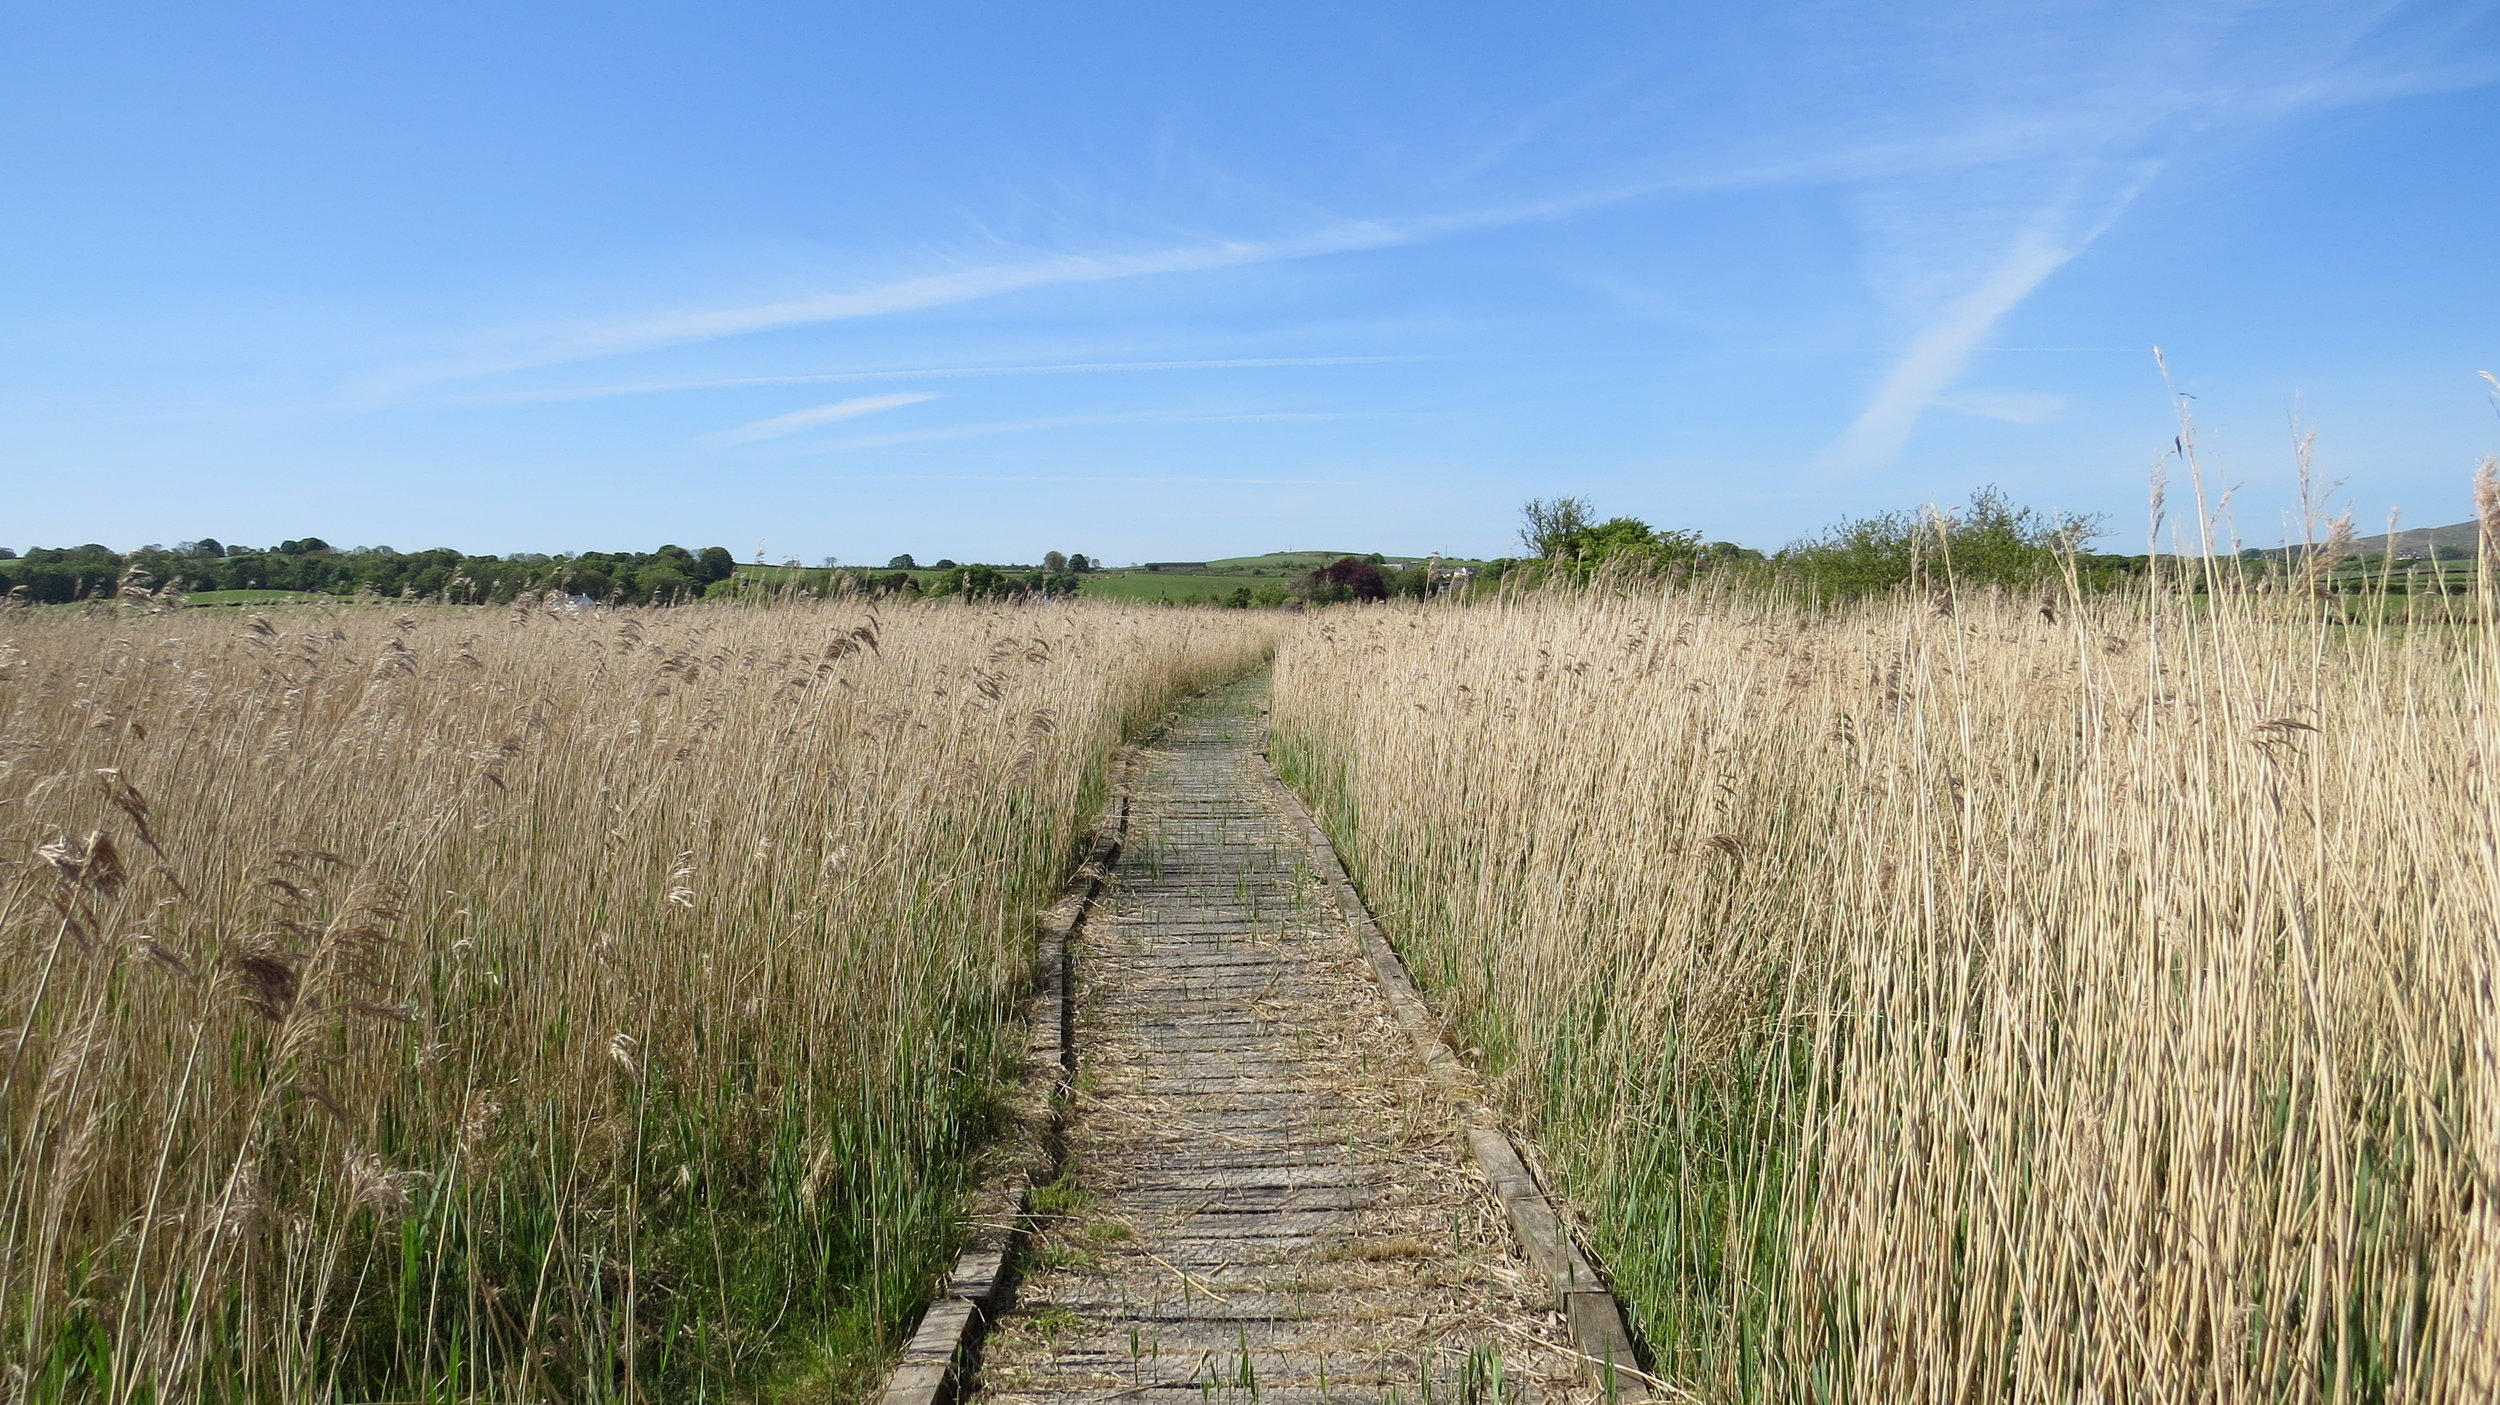 Boardwalk through the Reeds